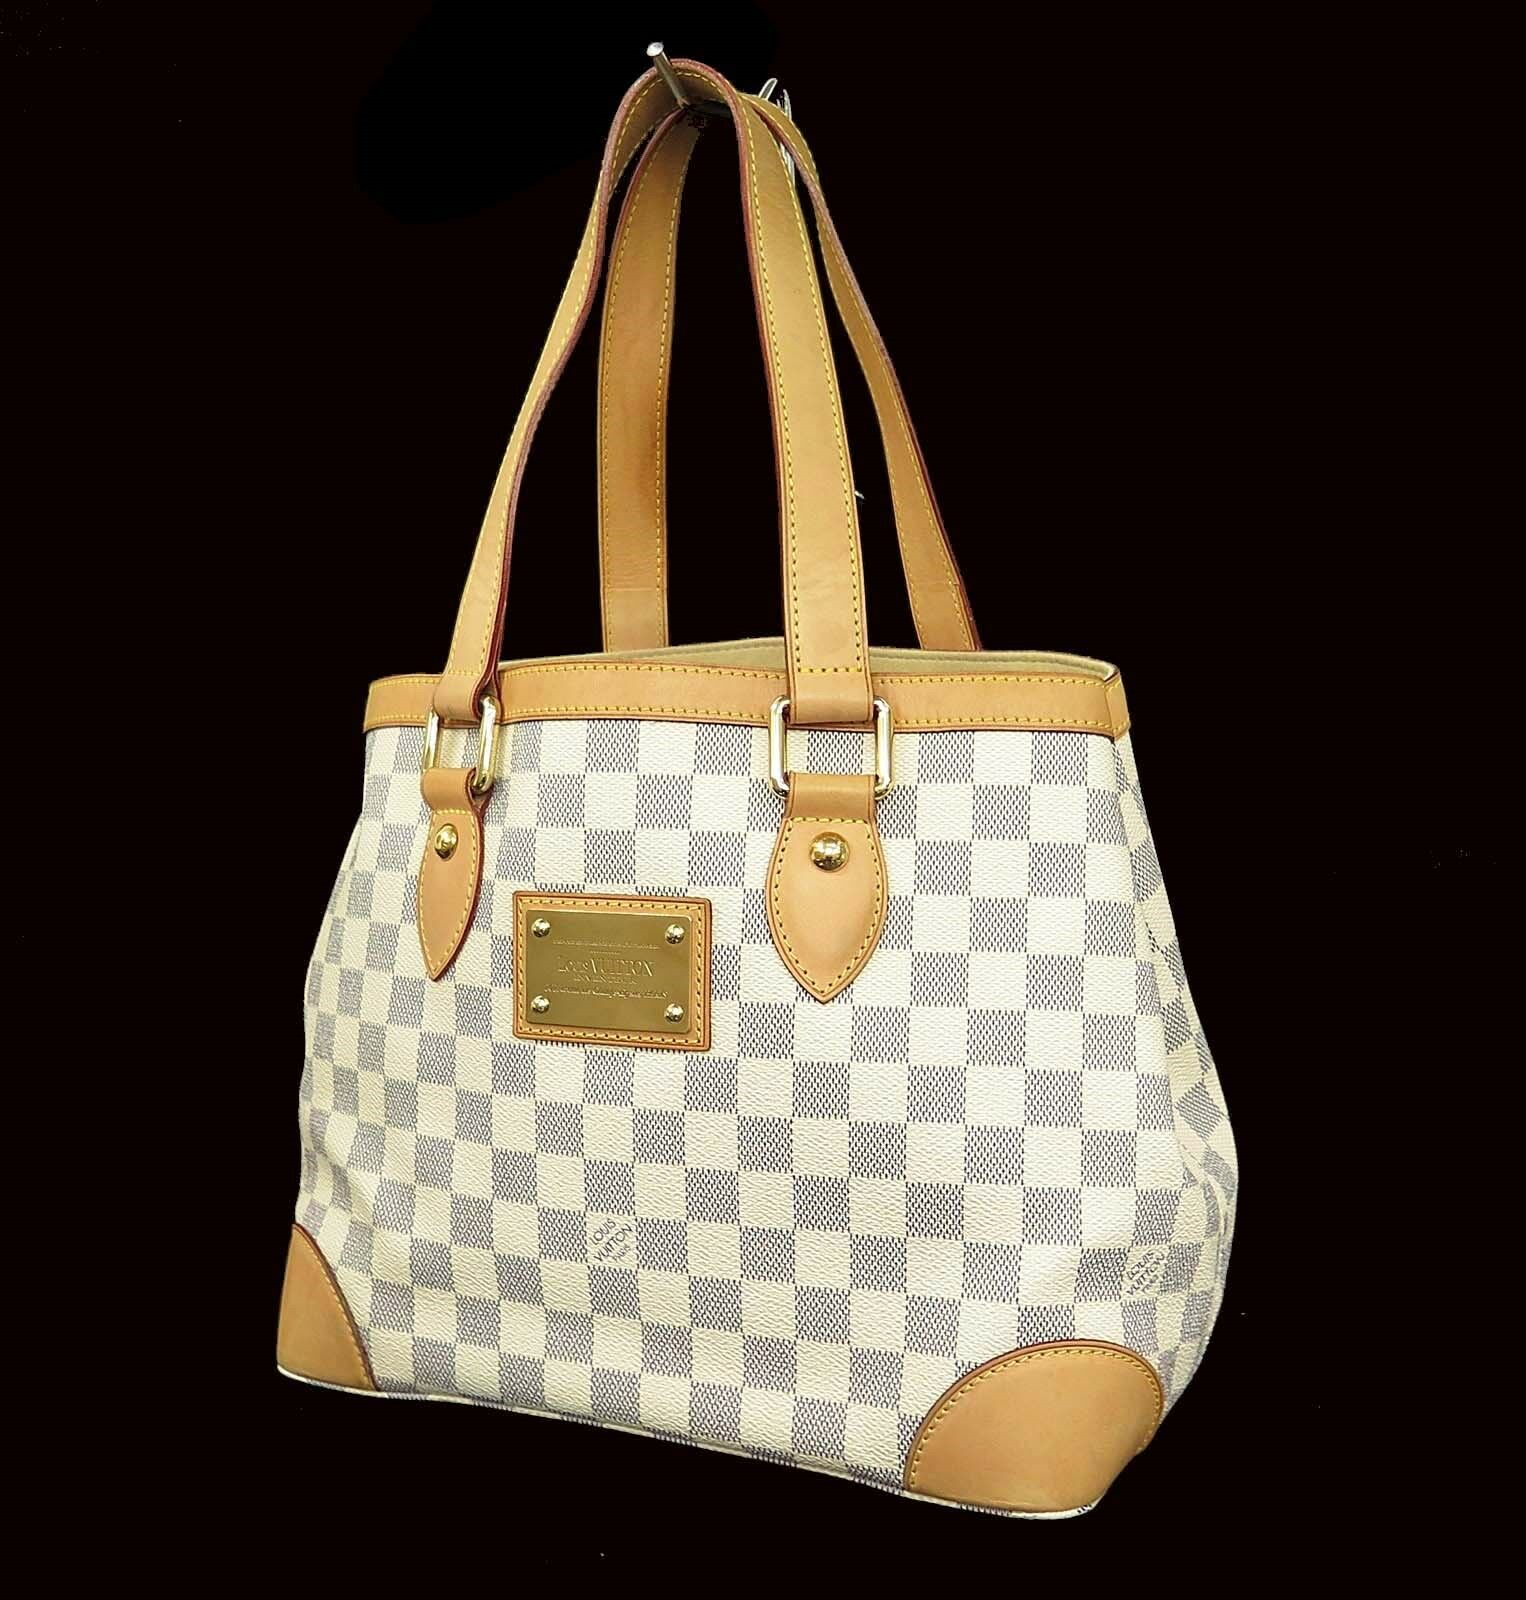 Authentic LOUIS VUITTON Hampstead PM Damier Azur Tote Shoulder Bag Purse #73231